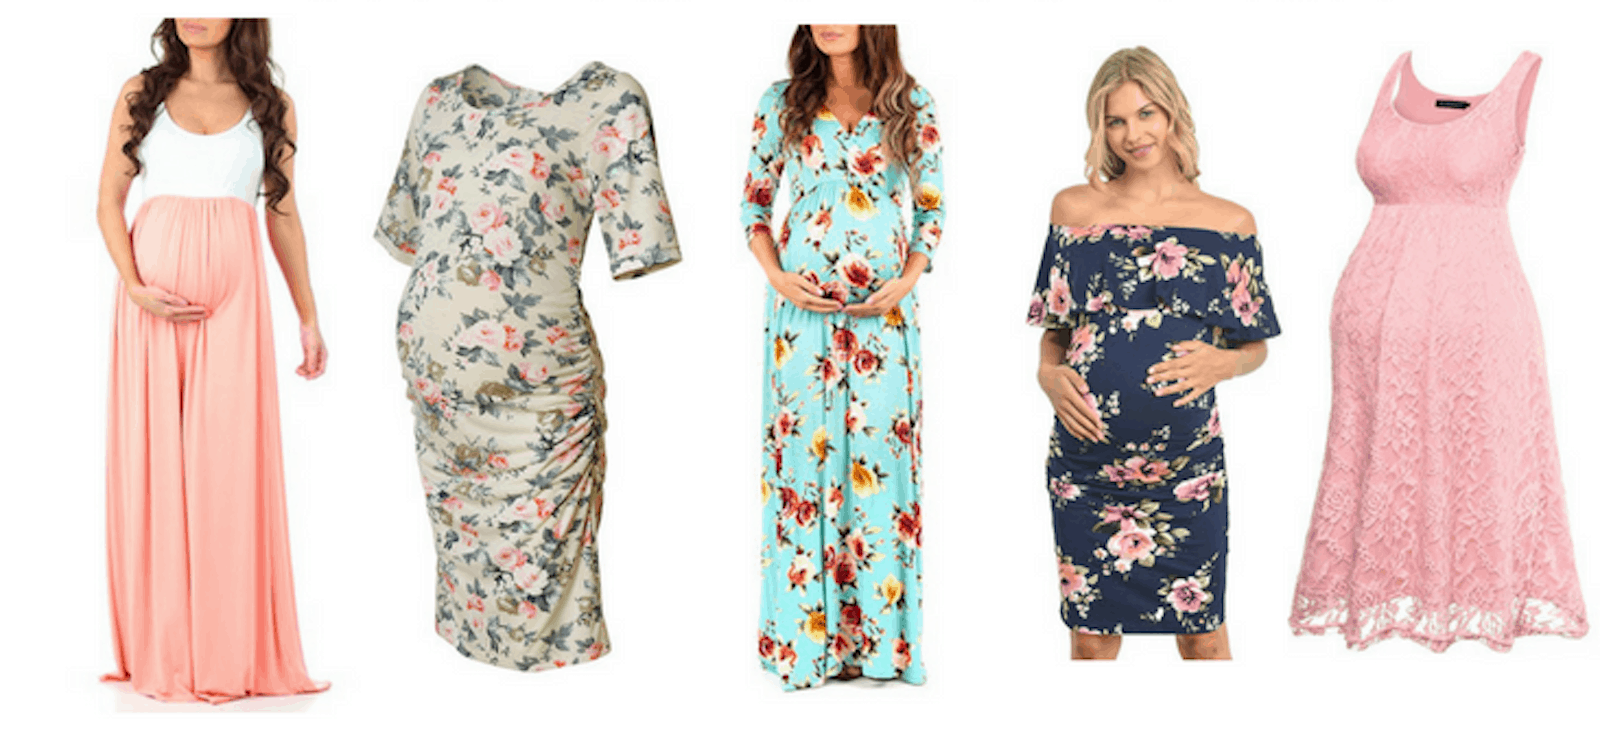 Affordable Spring and Summer Maternity Dresses (All Under $30!)